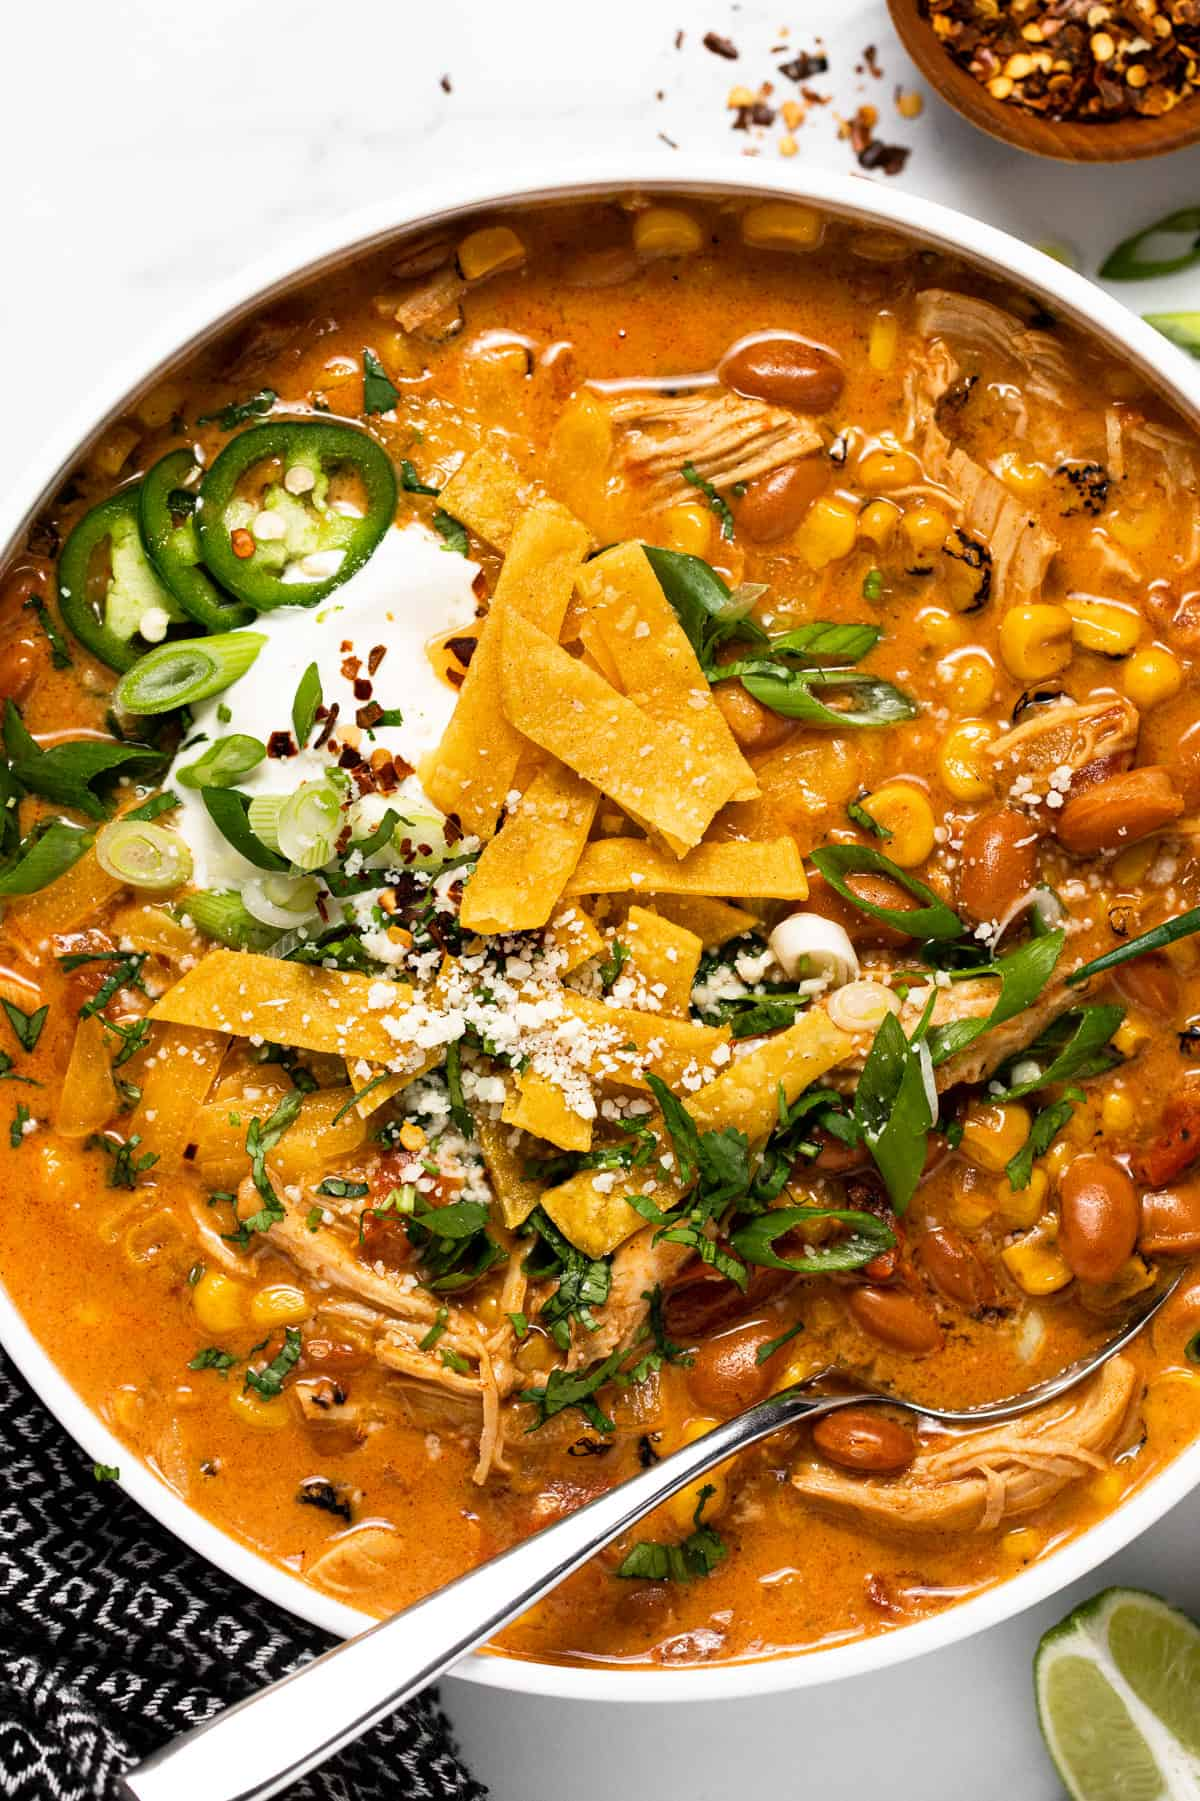 Large white bowl filled with instant pot chicken chili garnished with sour cream and tortilla strips